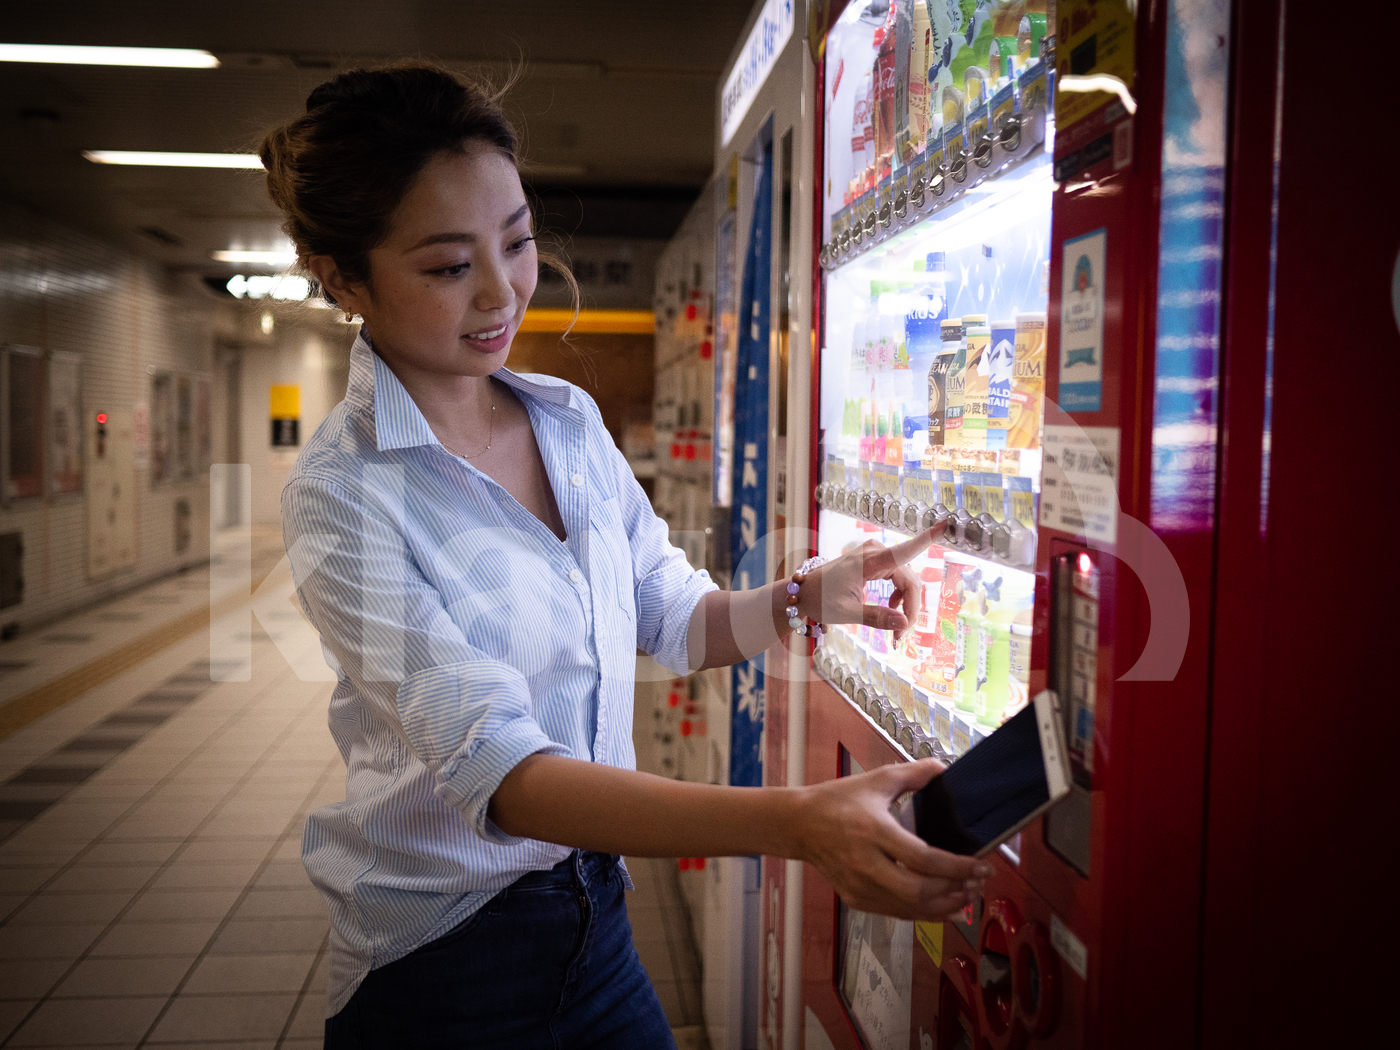 Young Japanese woman paying with mobile at vending machine